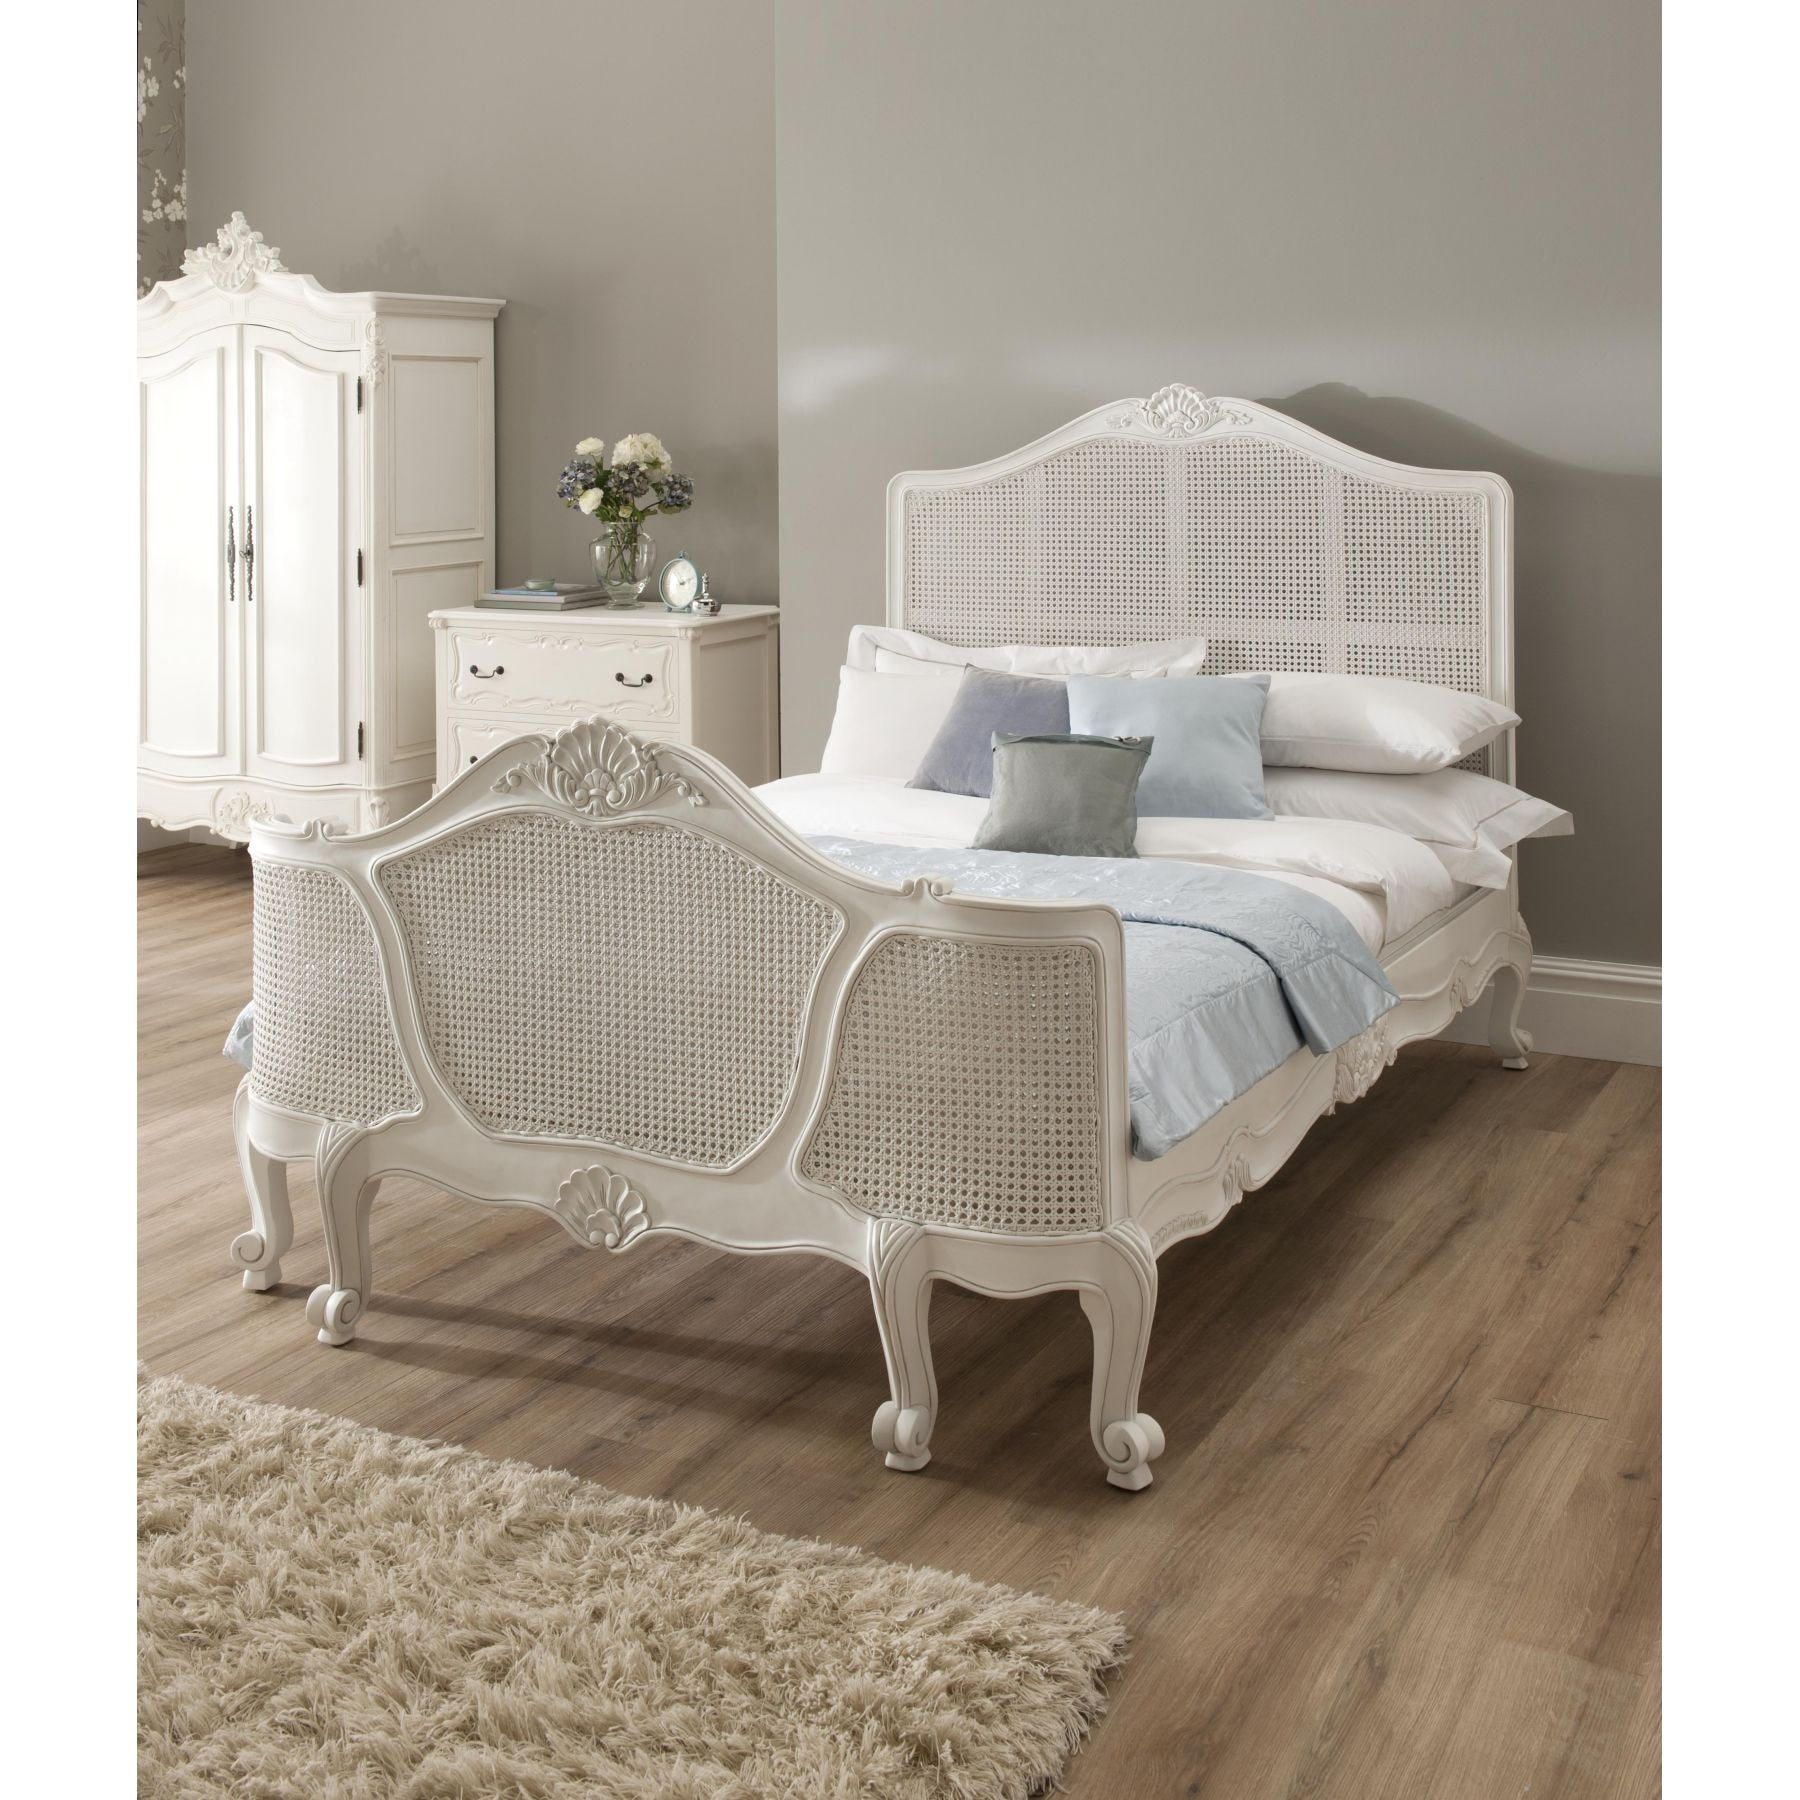 Second Hand Shabby Chic Bedroom Furniture La Rochelle Bundle Deal 10 Bedroom From Homesdirect 365 Uk